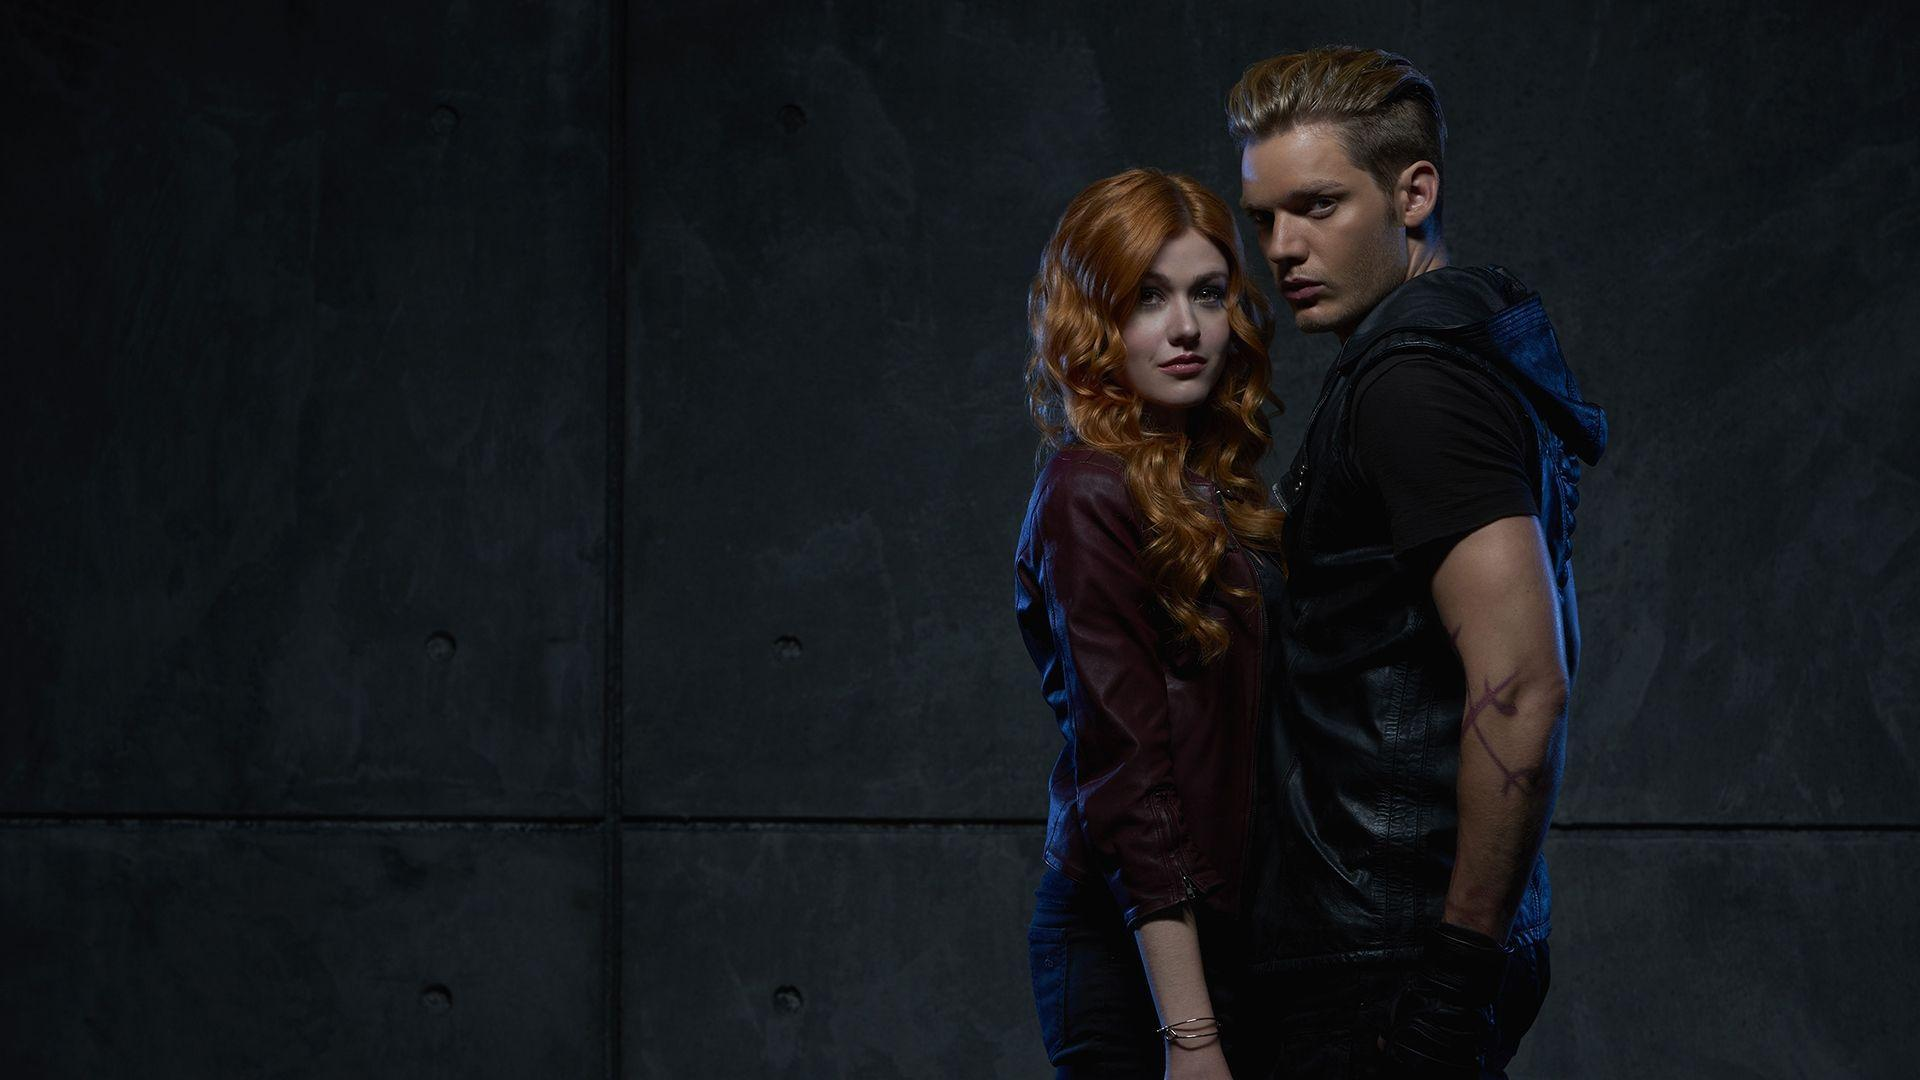 Shadowhunters - Shadowhunters Wallpaper (1920x1080) (252326)